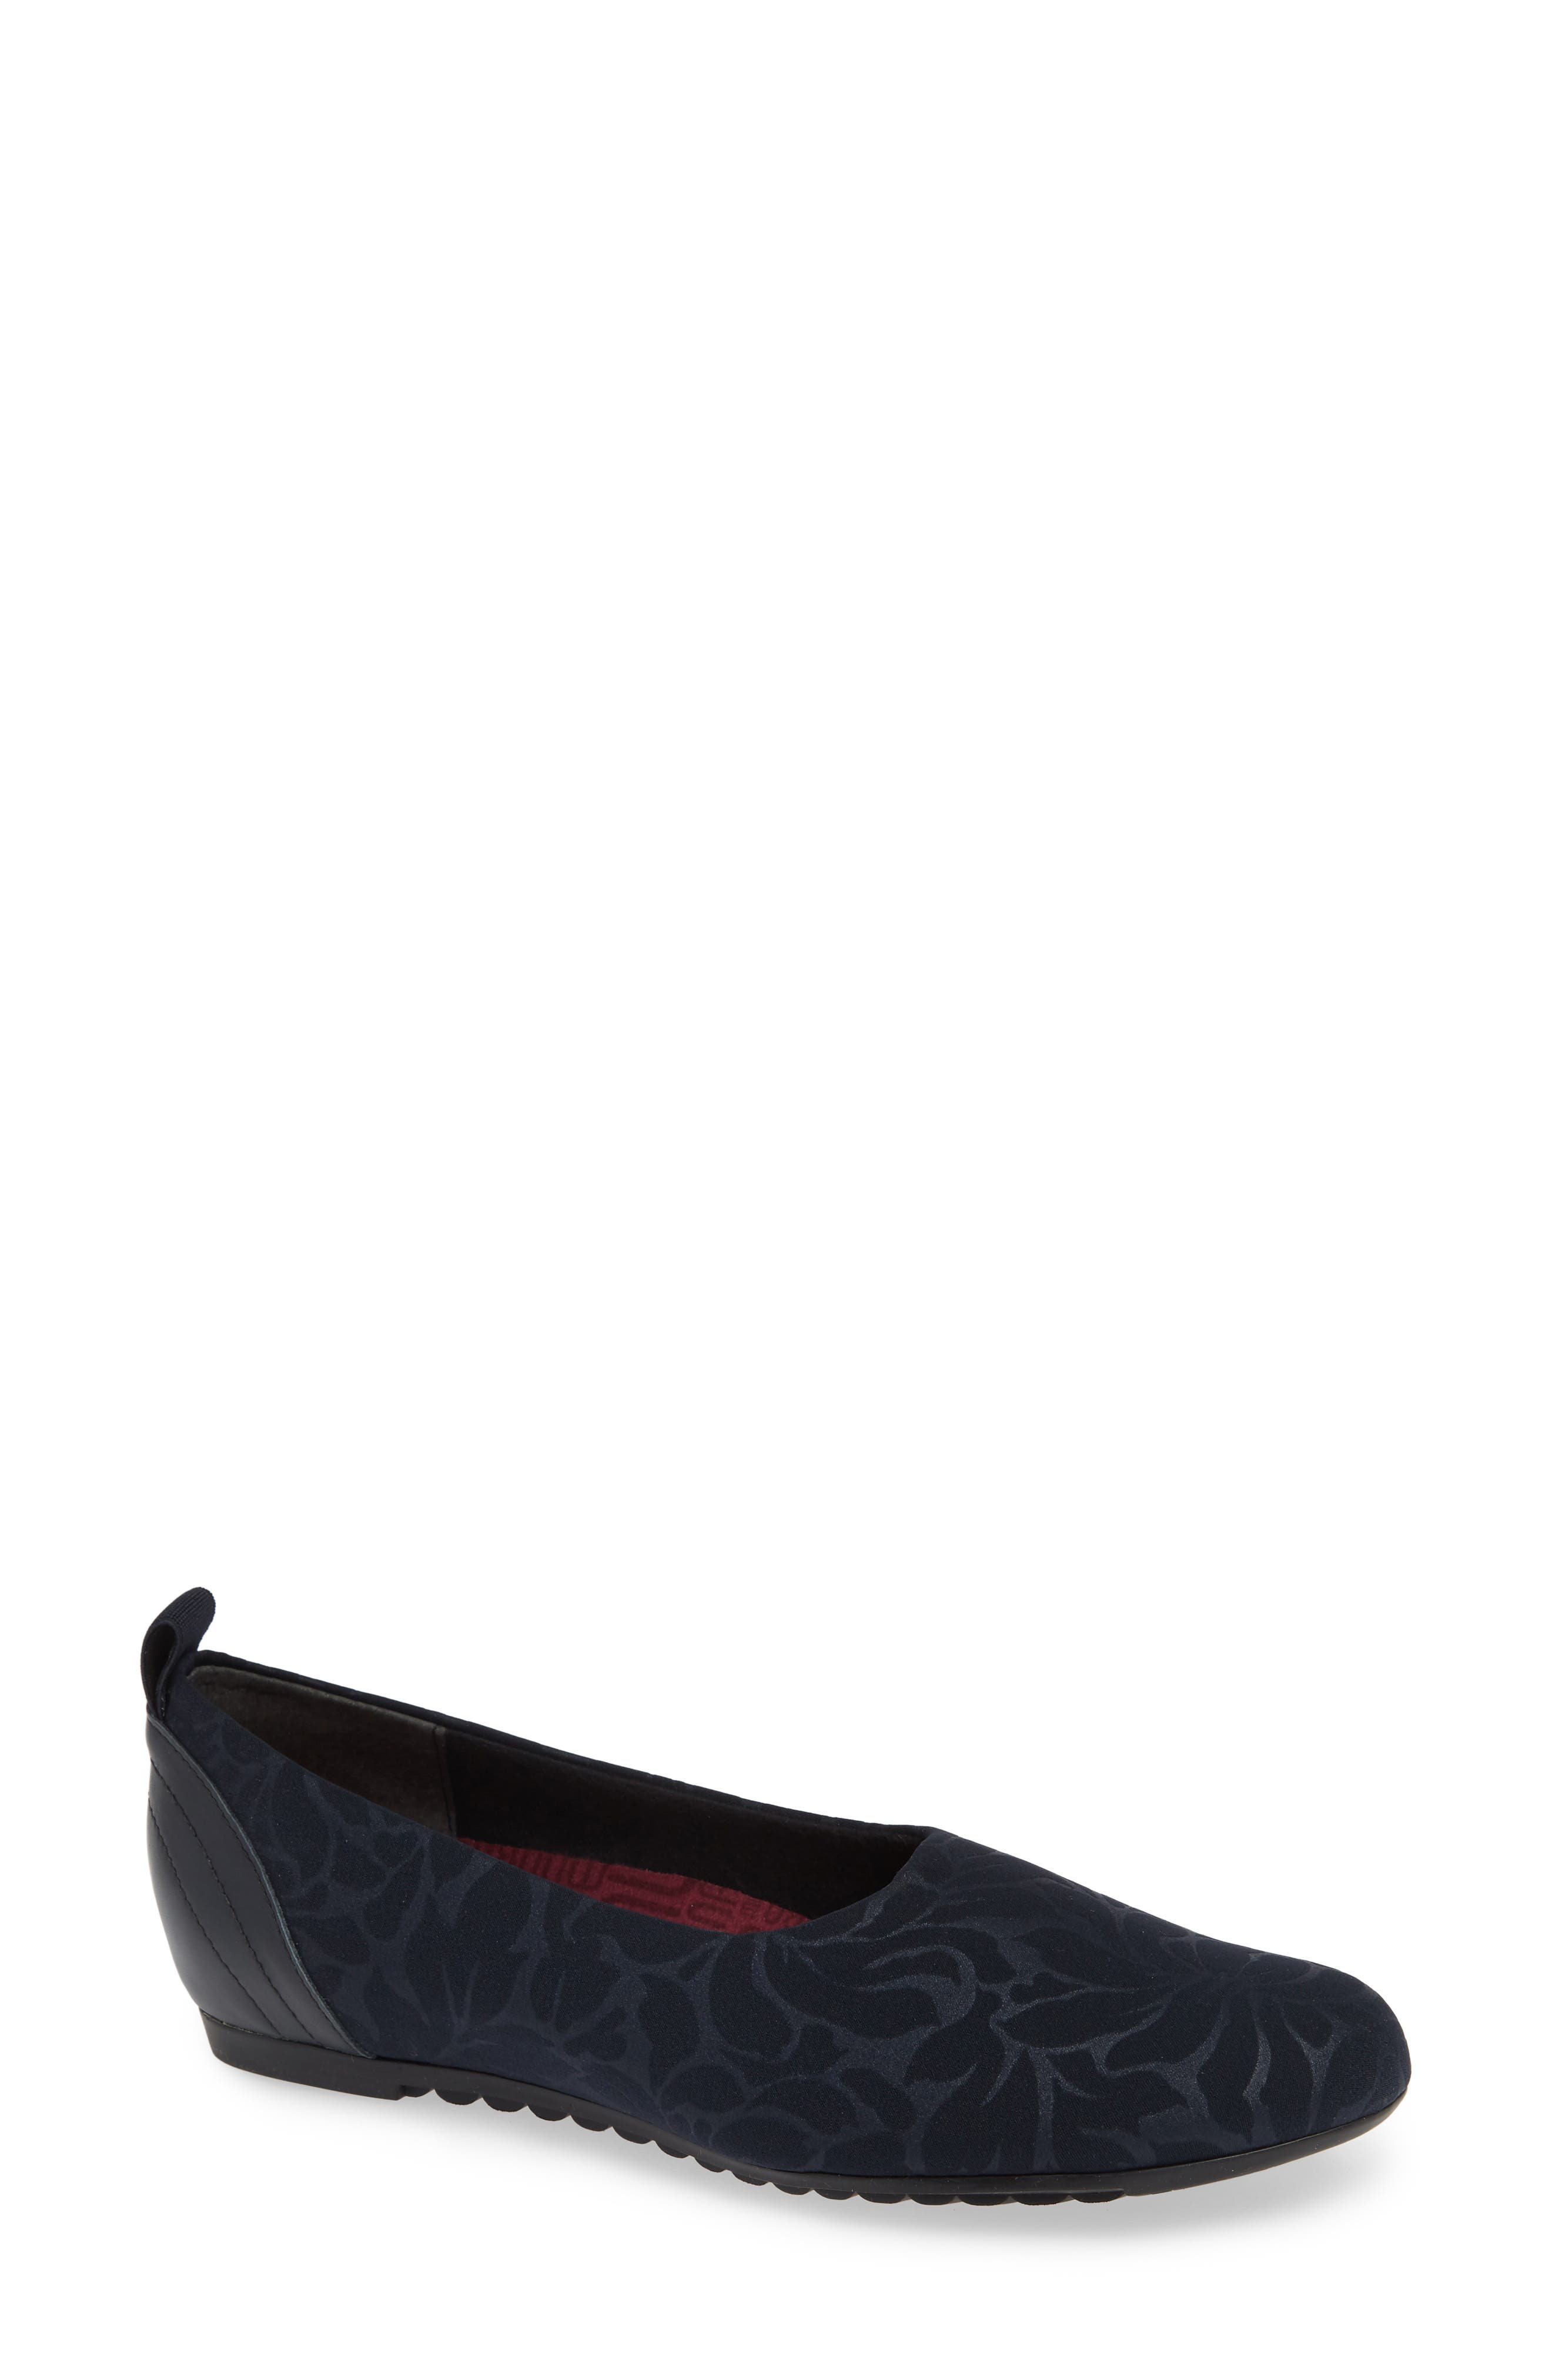 MUNRO Iriana Flat, Main, color, NAVY STRETCH FABRIC